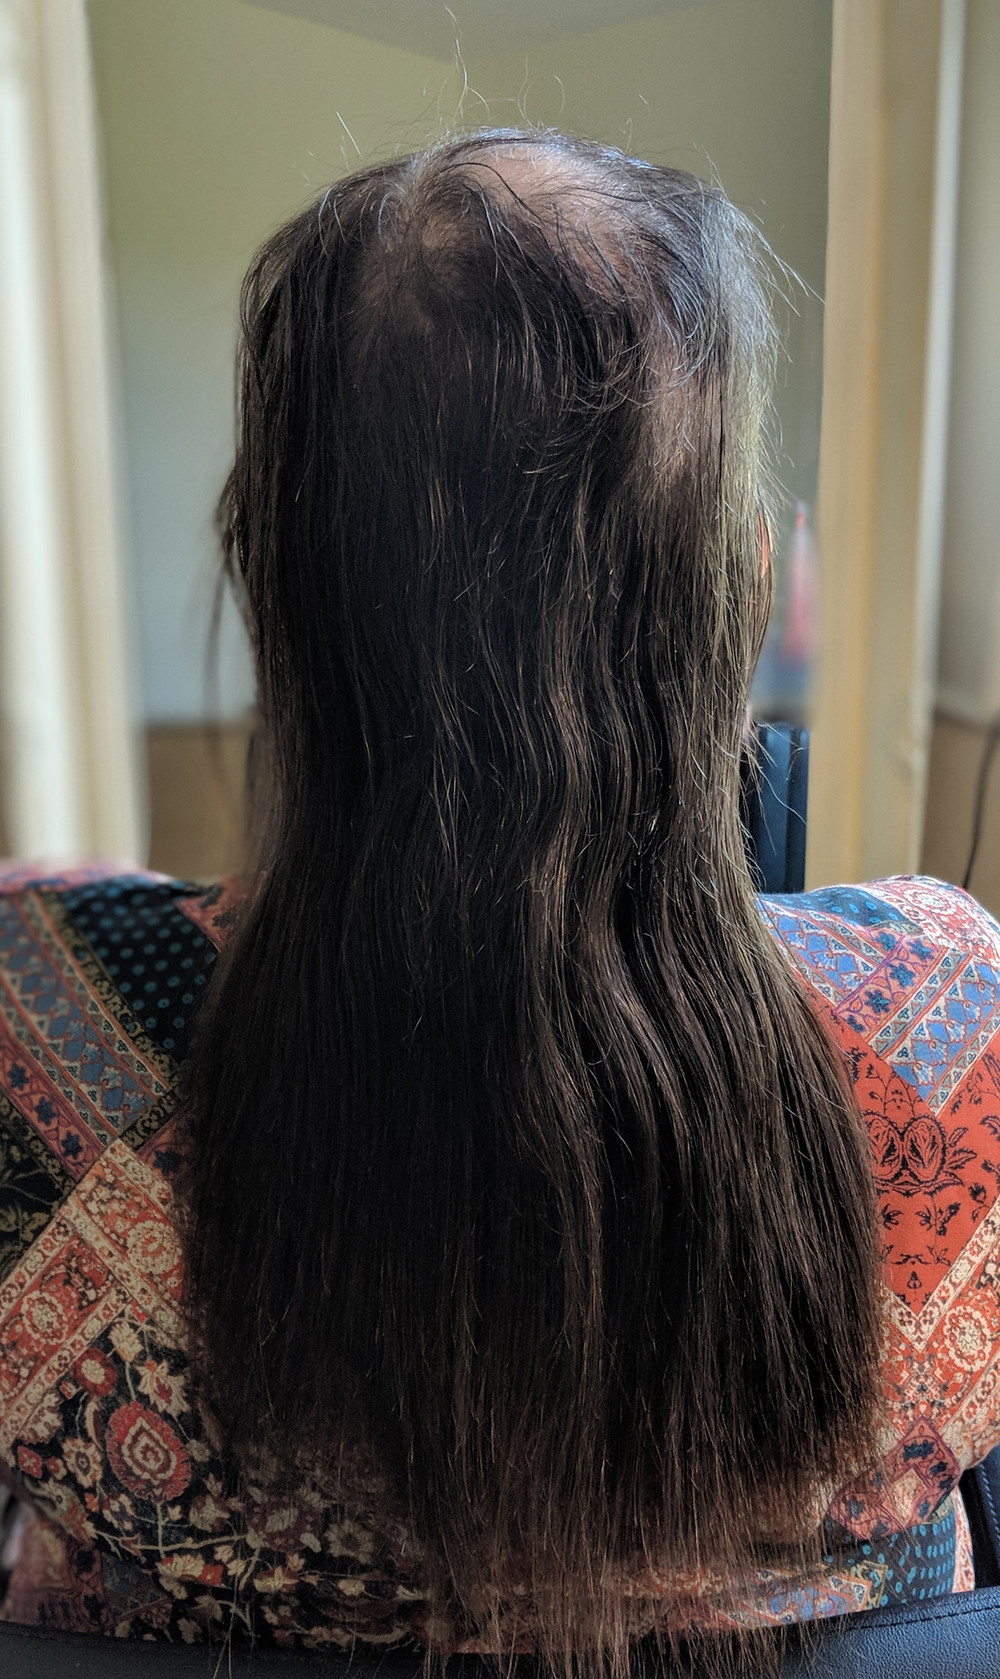 My brave client selflessly allowed me to use her image in the hope to help any other Trichotillomania sufferer's. I am in awe of her courage and of all my Hairloss client's who permit me to use their images. Love & Respect x